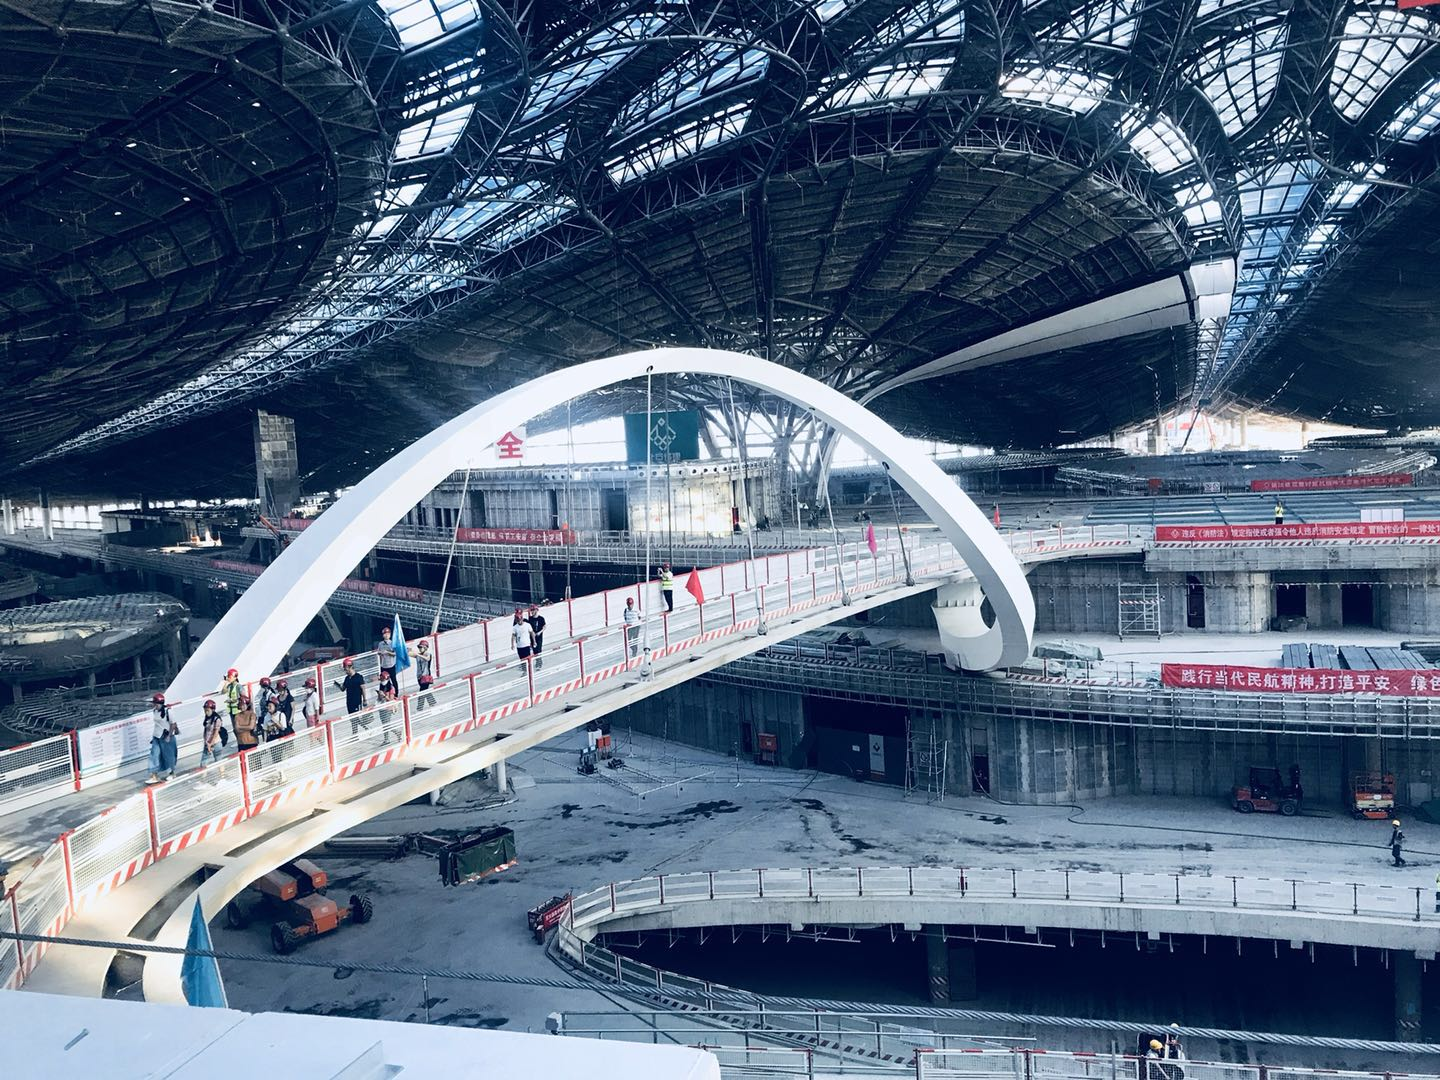 First look at the building site of the new Beijing airport